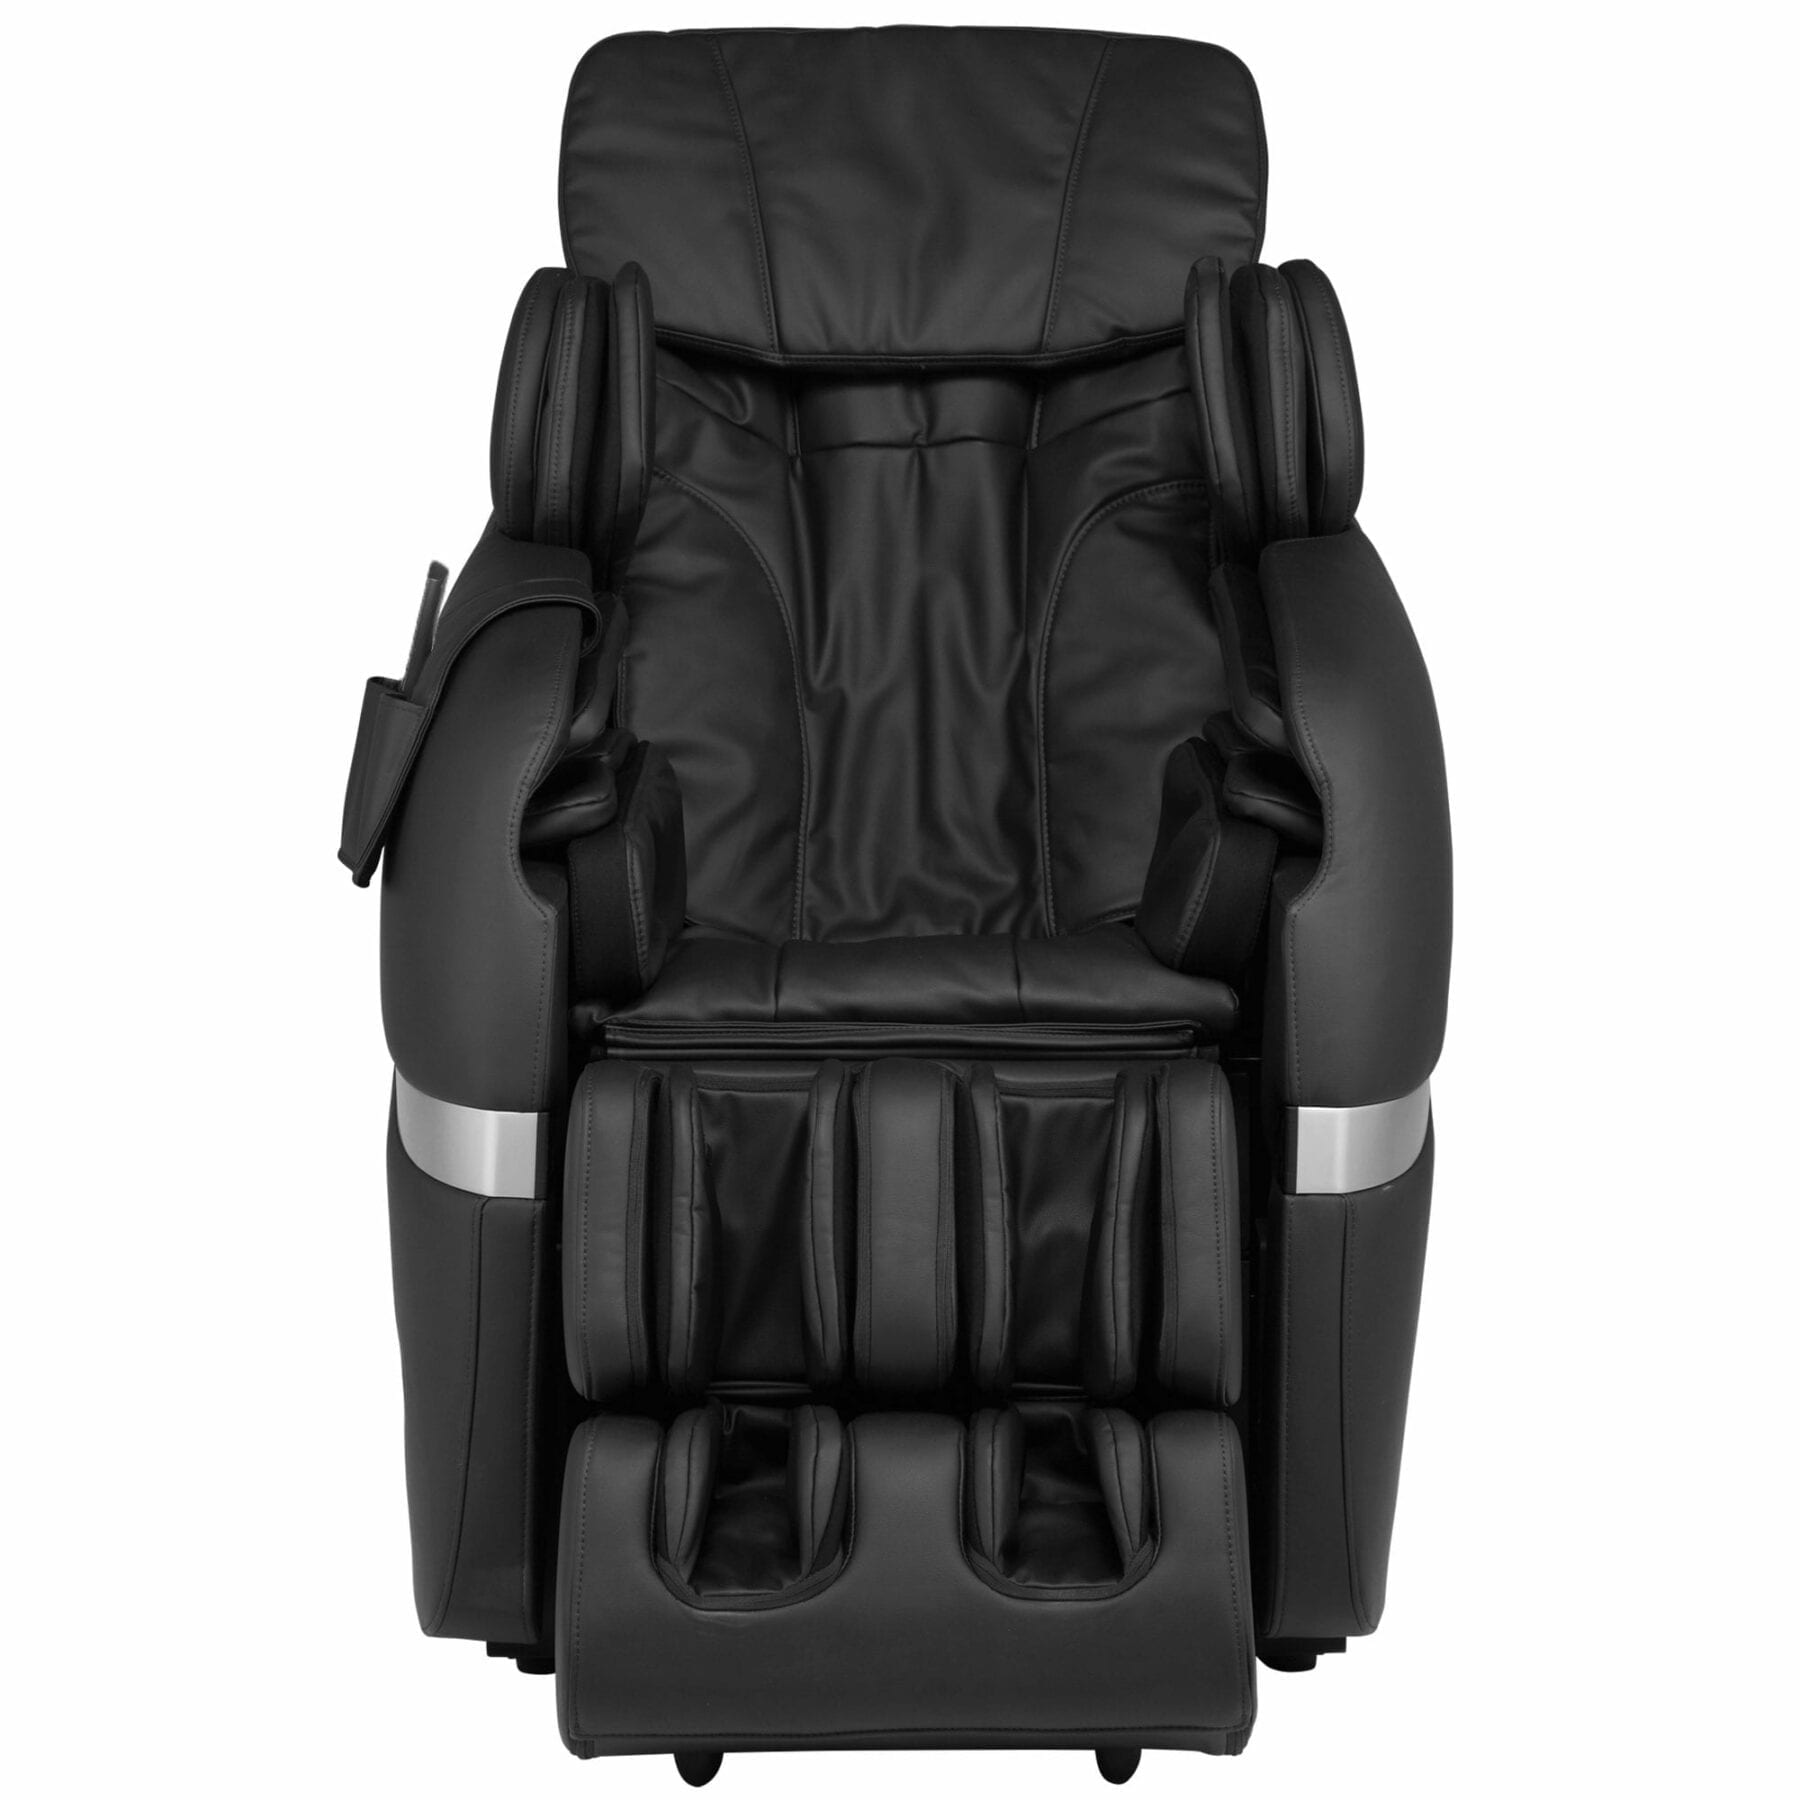 Brio Whole Body Massage Chair A Relaxing Escape at Home